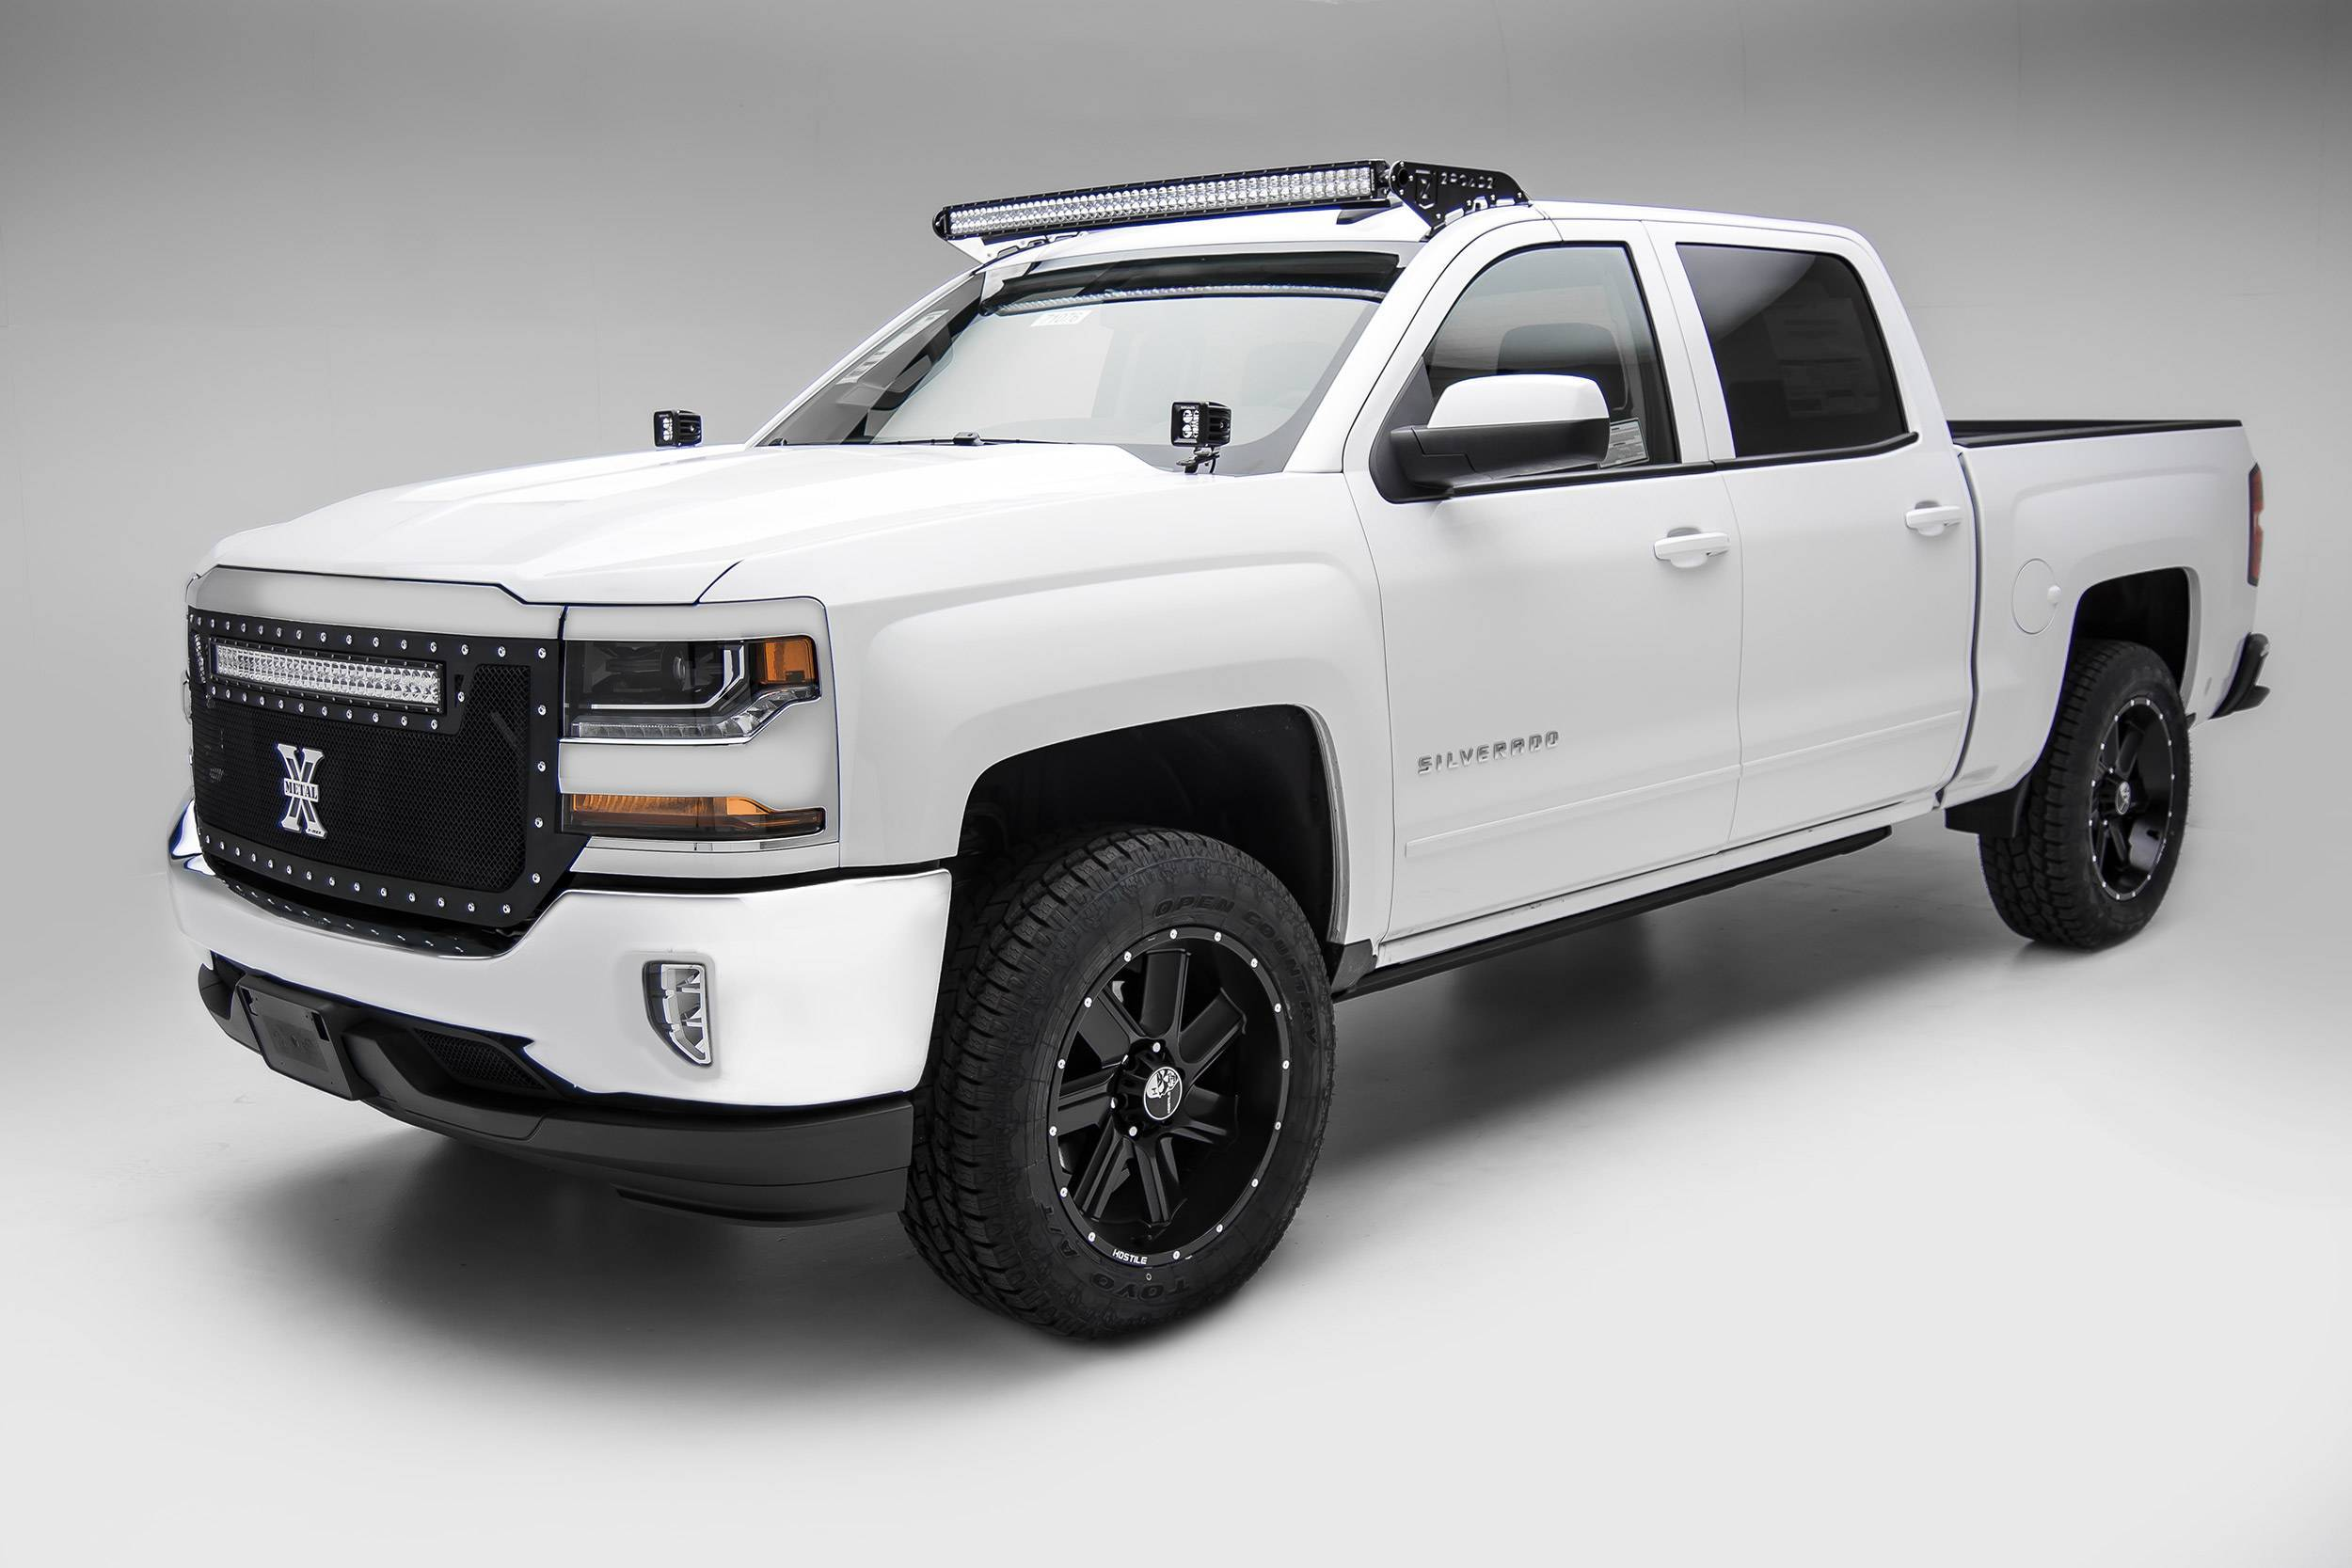 ZROADZ OFF ROAD PRODUCTS - Silverado, Sierra Front Roof LED Kit with (1) 50 Inch LED Curved Double Row Light Bar - PN #Z332081-KIT-C